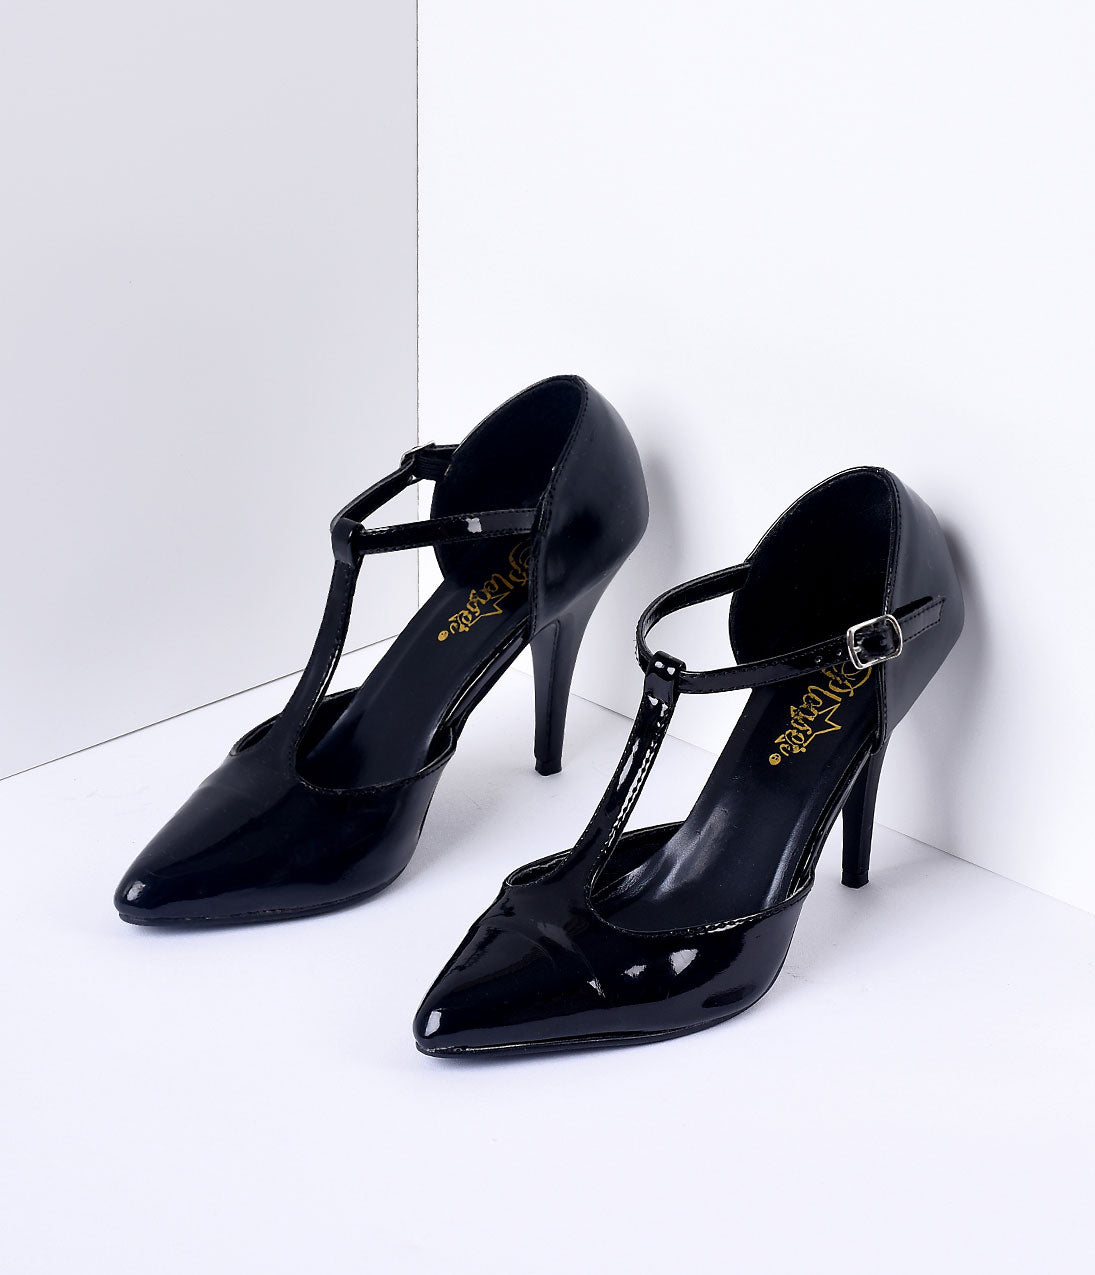 1950s Shoe Styles: Heels, Flats, Sandals, Saddles Shoes 1920S Style Black T-Strap Heels $68.00 AT vintagedancer.com